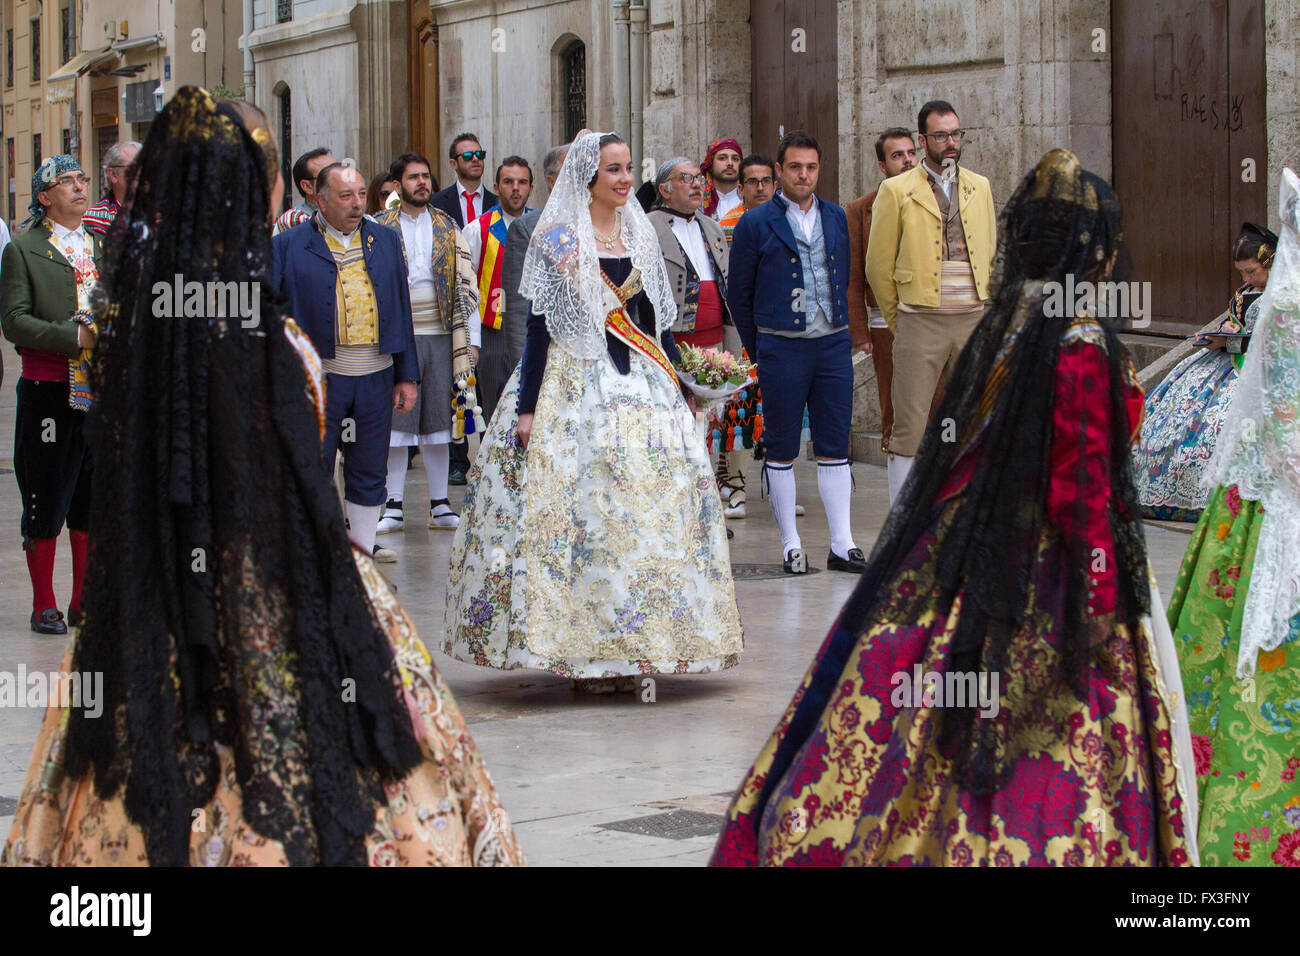 Flower offering procession honouring the holy Lady of Valencia during Fallas Fesgival, Valencia Spain - Stock Image